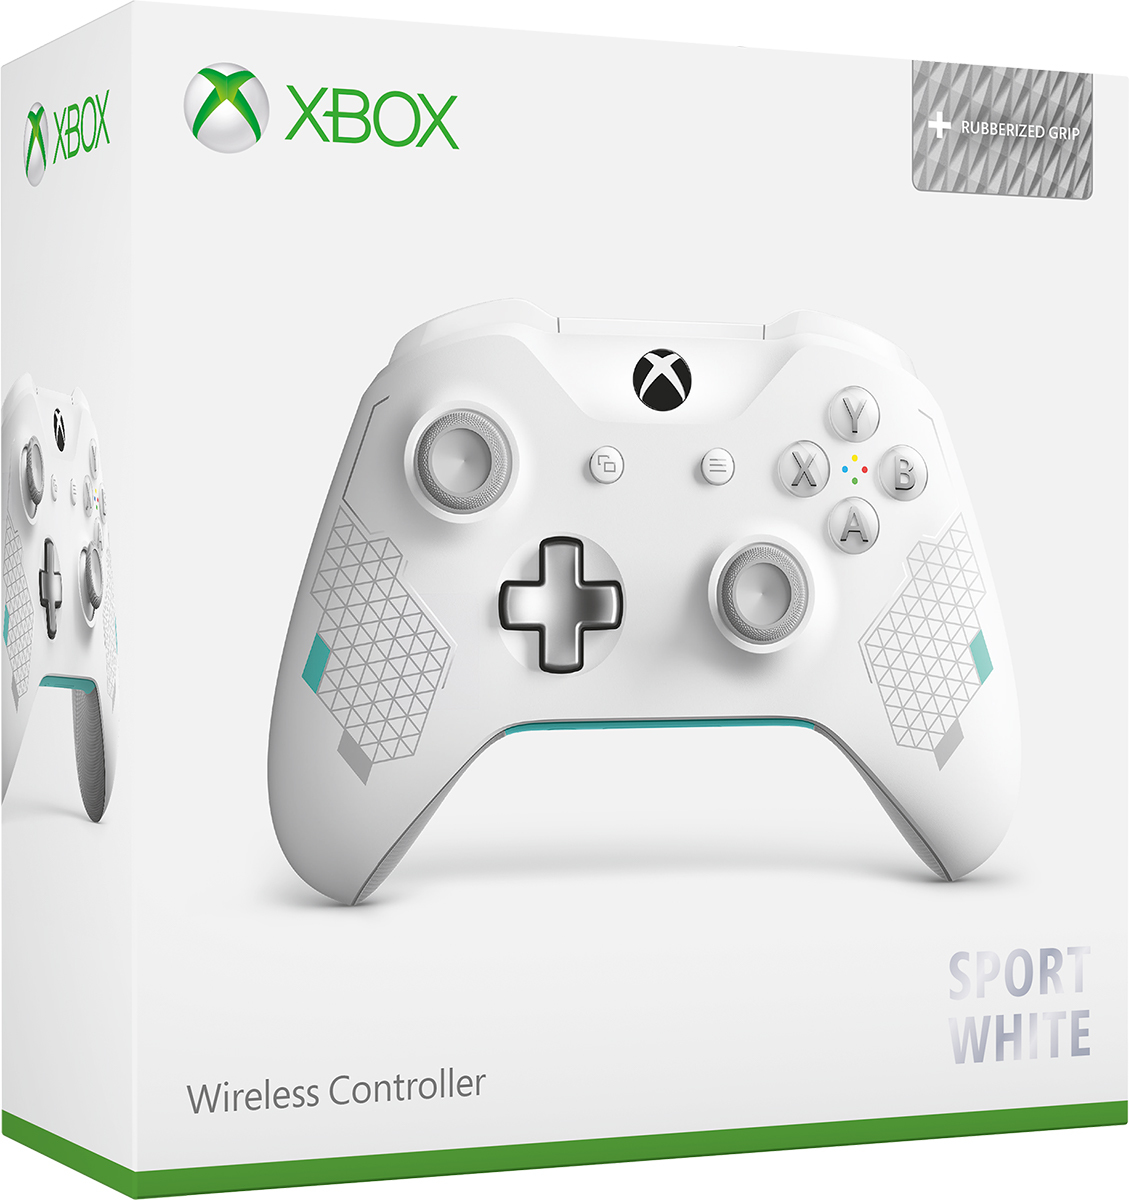 Xbox One Wireless Controller - Sport White Special Edition for Xbox One image